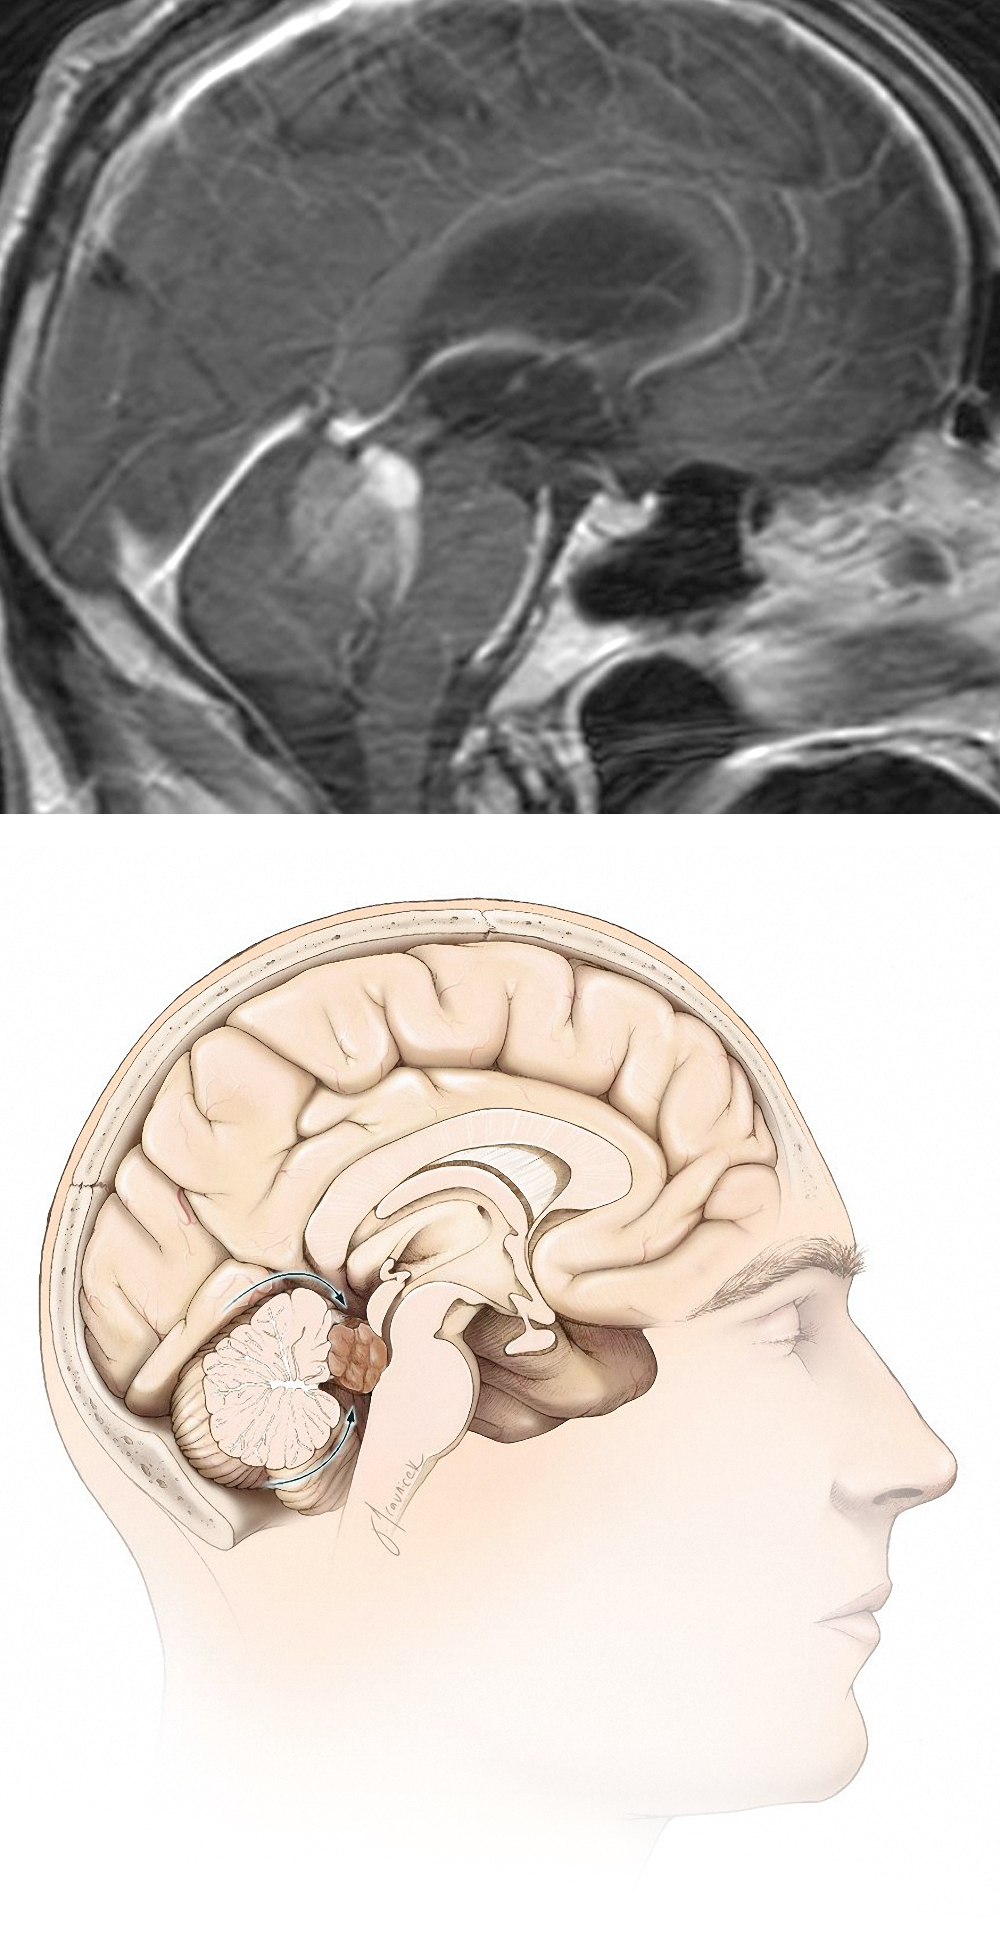 Figure 8: A small inferior vermian split is often safe for exposure of large cranially situated fourth ventricular tumors near the superior medullary velum and the pineal region (top image). Alternatively, a combined telovelar and supracerebellar approach may be attempted (bottom illustration).